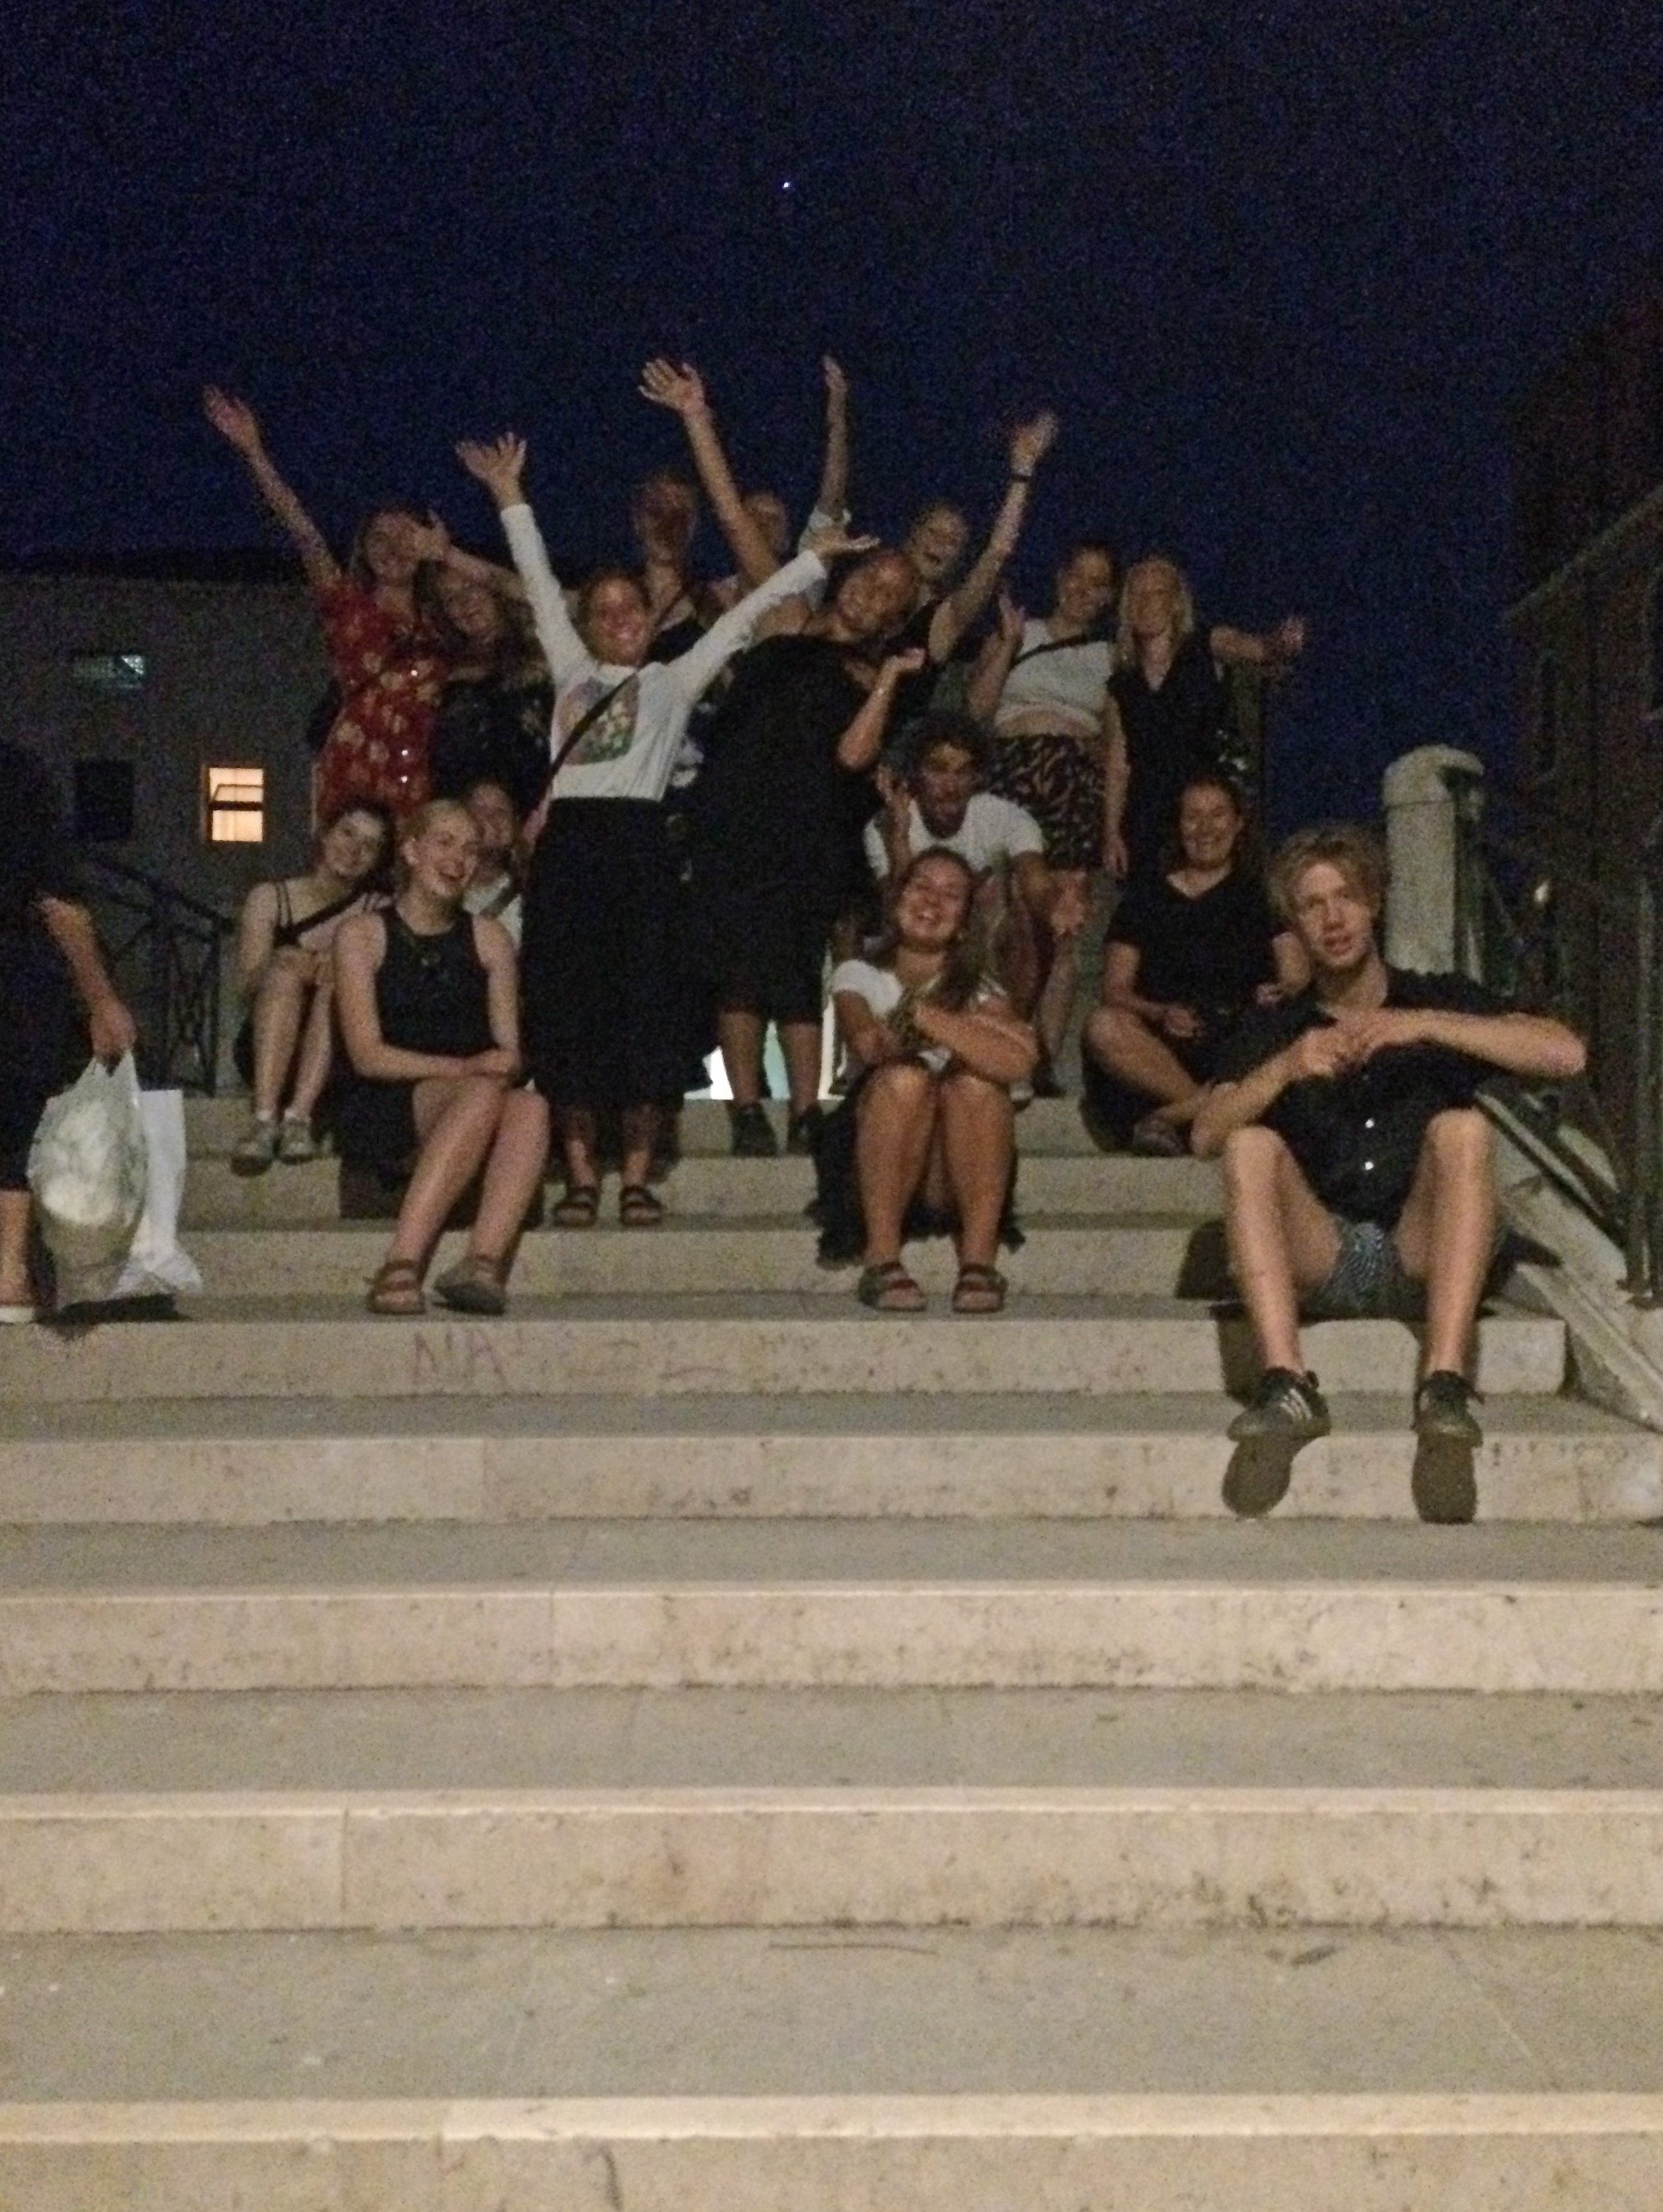 Night Exploration In Sant'Elena With The Krogerup College Students, Humlebaek, Denmark